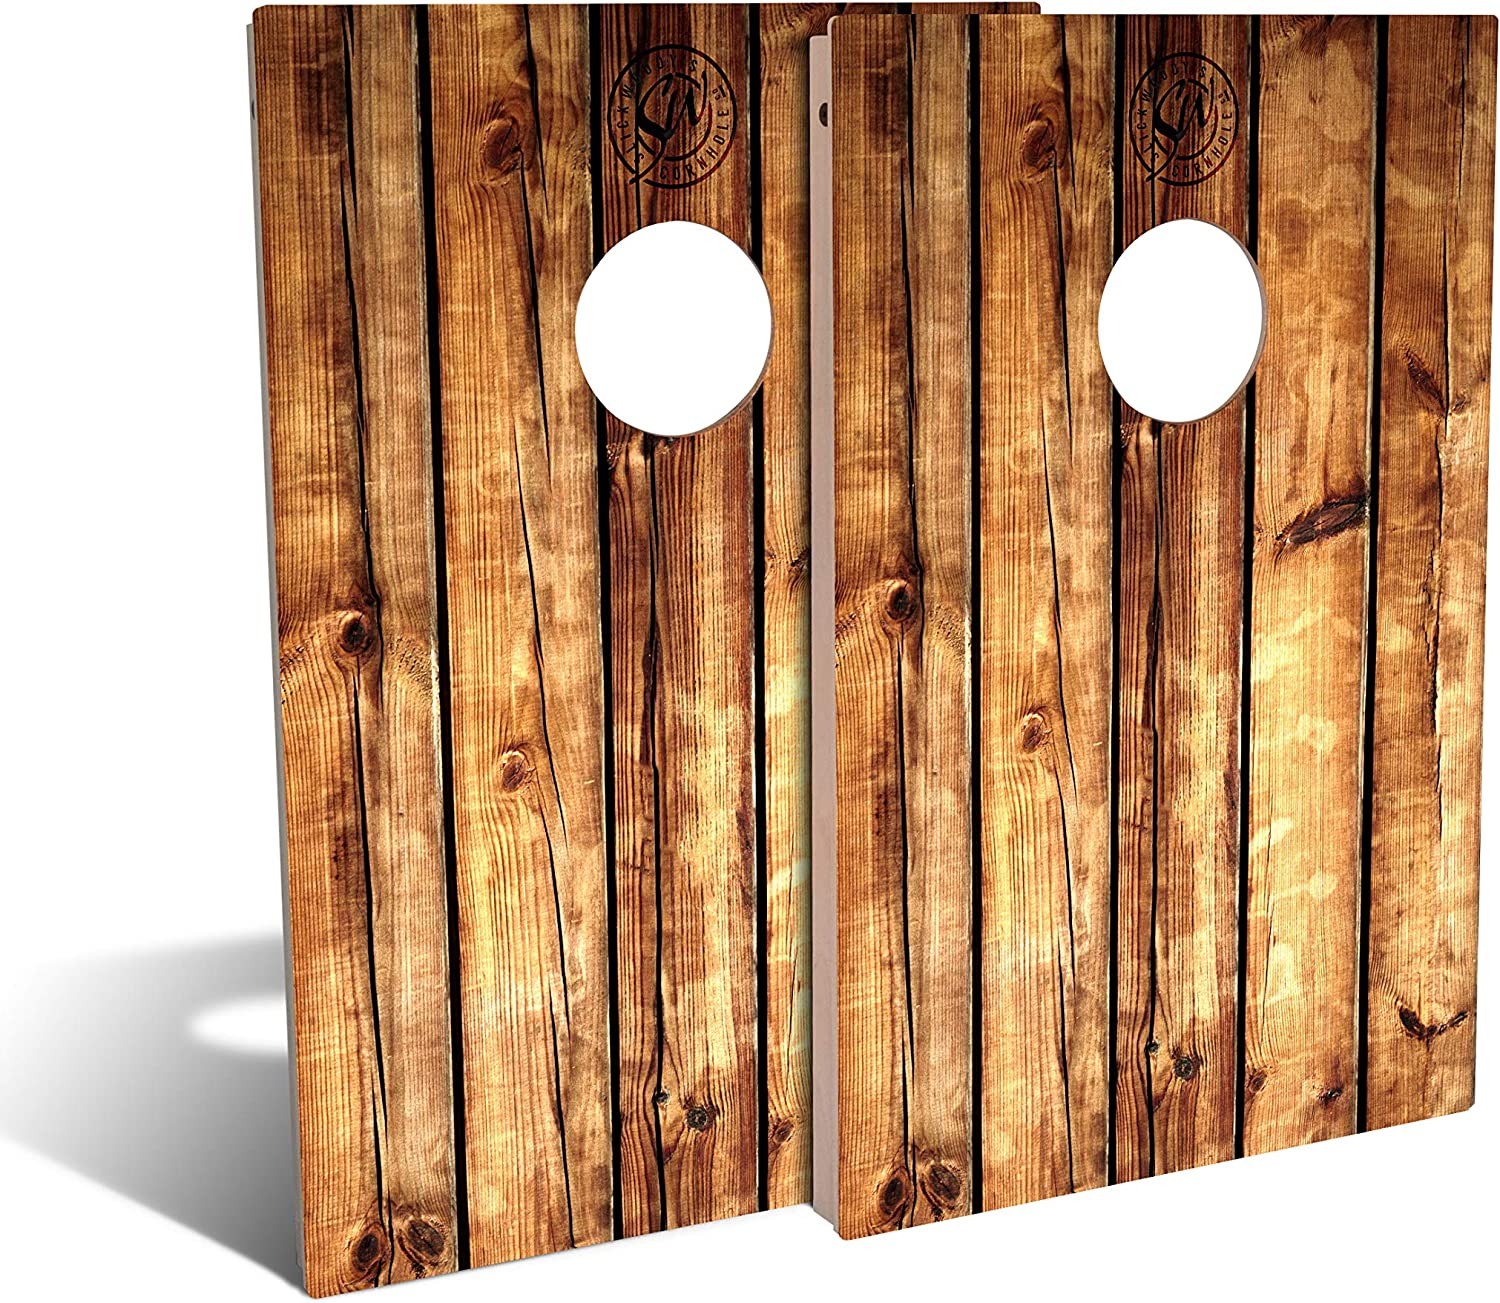 Slick Woody'S Pallet Superior Beauty products Wood Cornhole Bags Set with 8